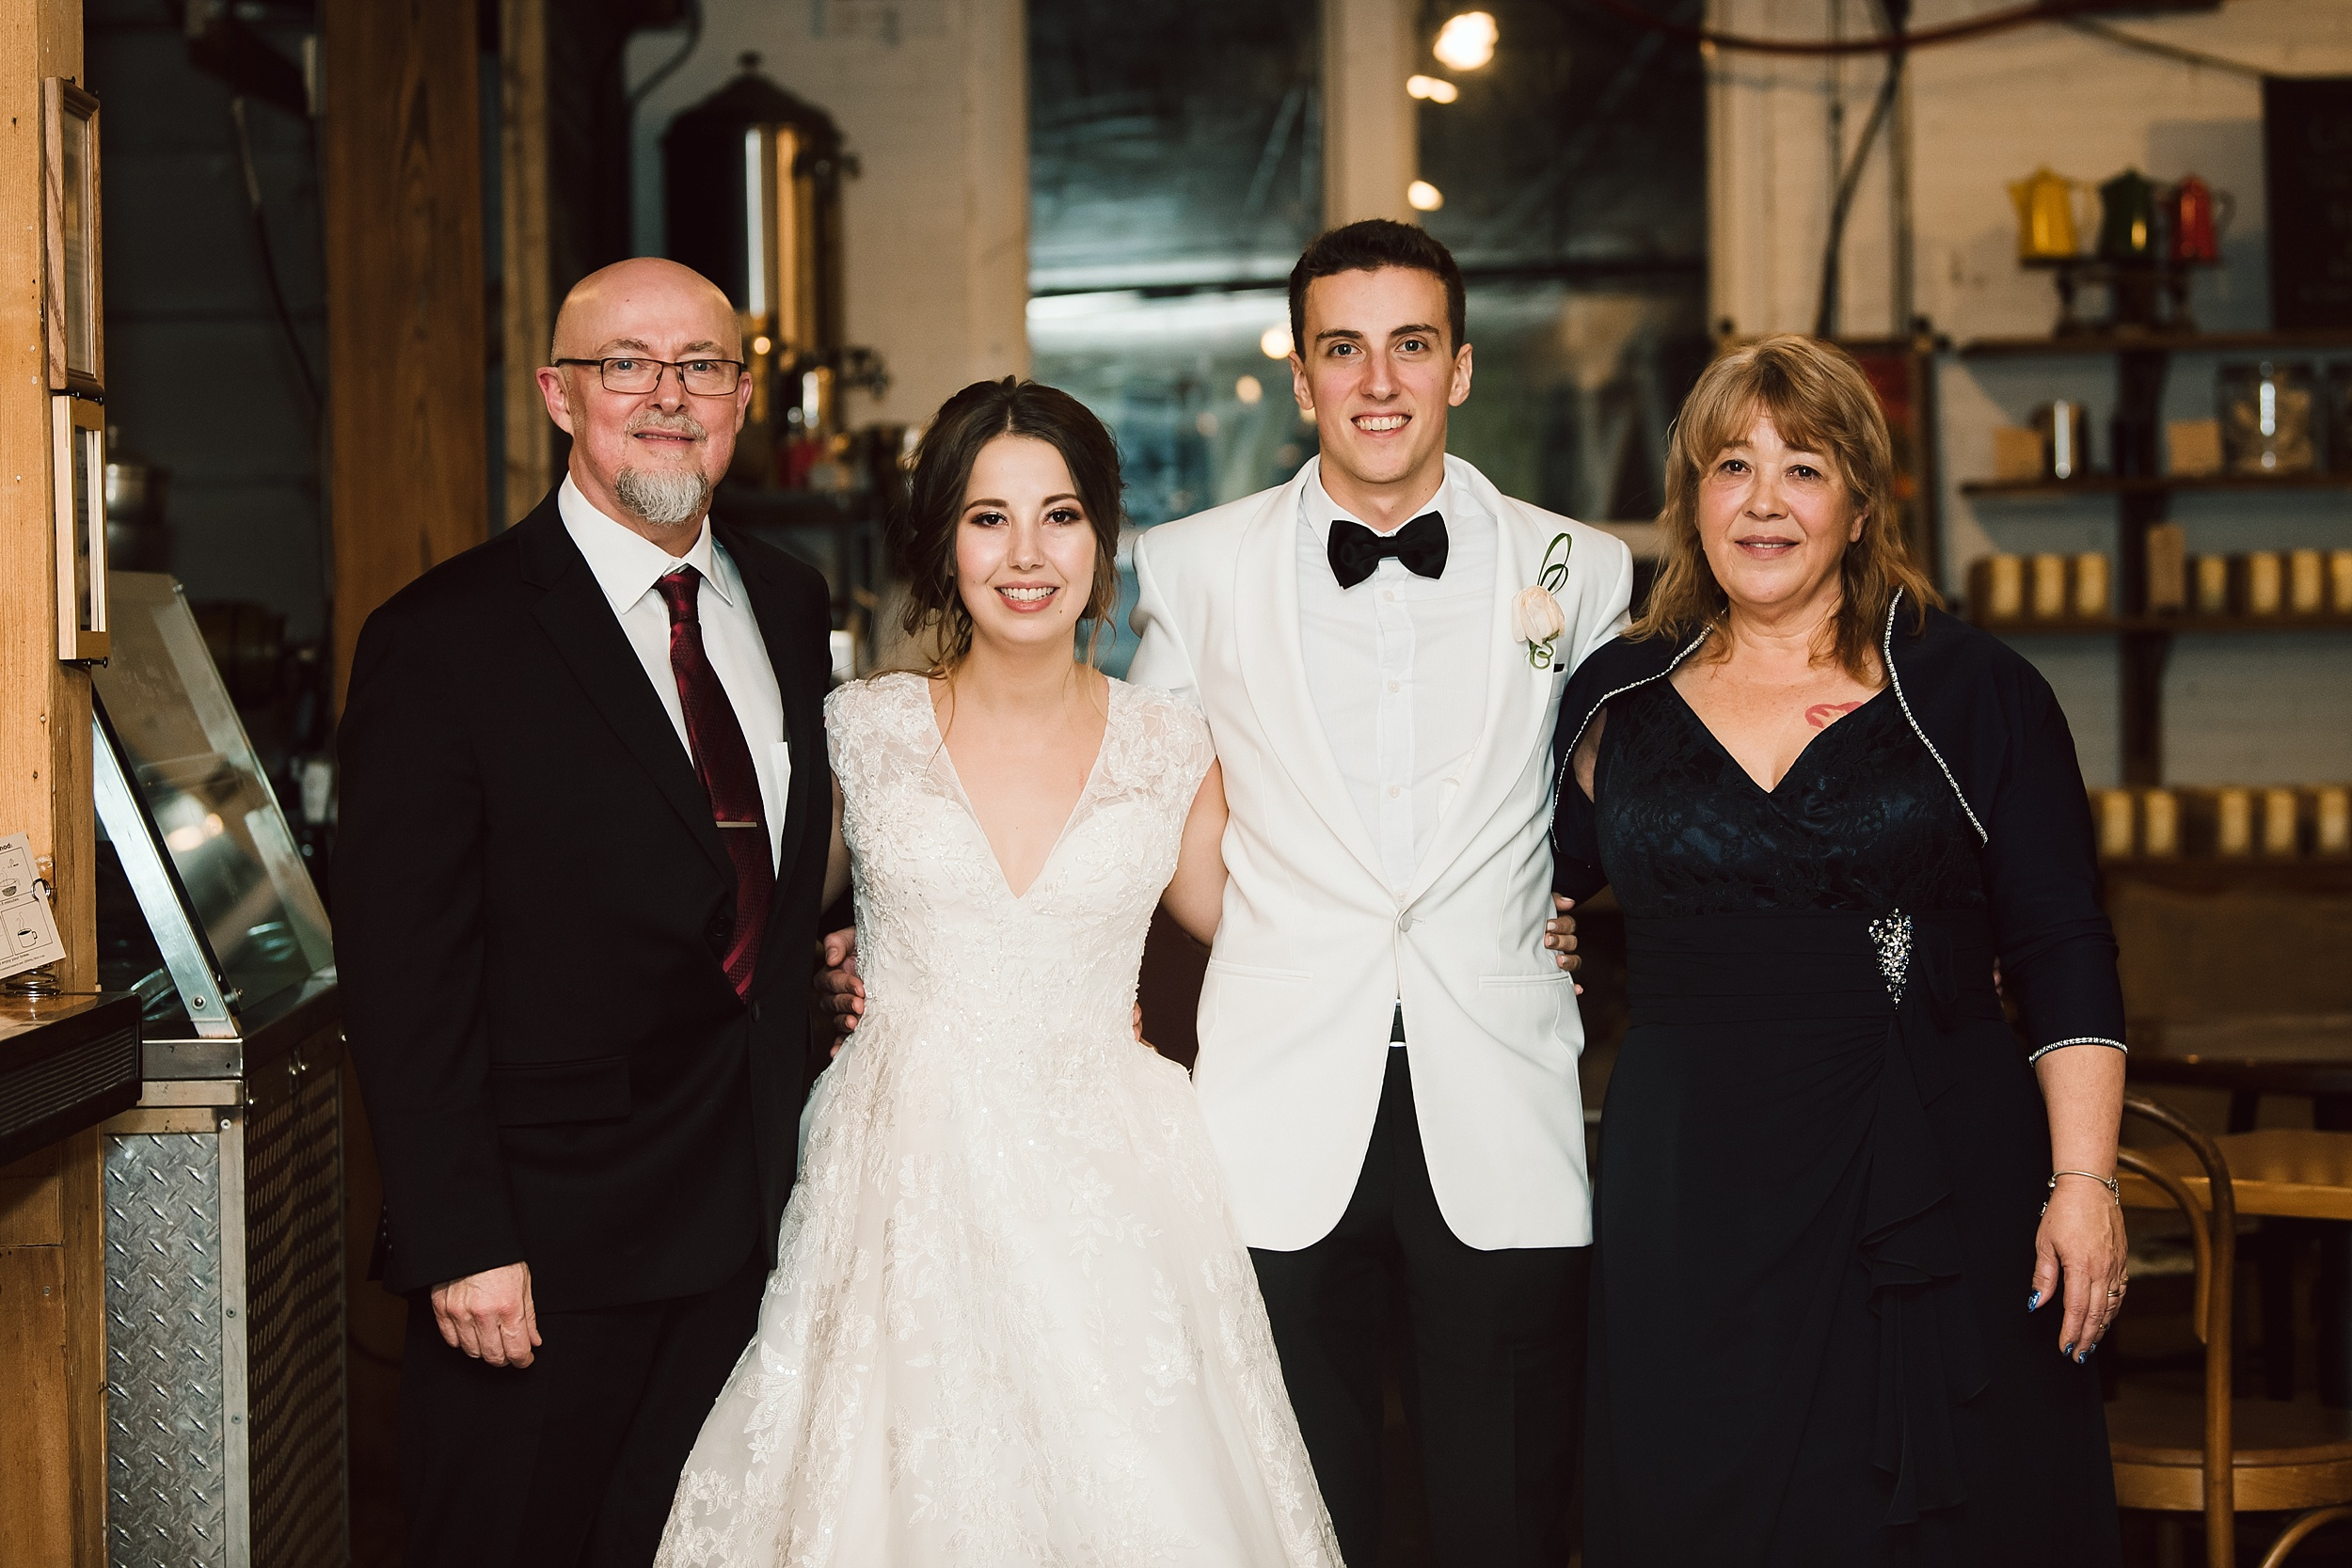 Jam_Factory_Wedding_Toronto_Winter_Wedding_Photographer_0062.jpg